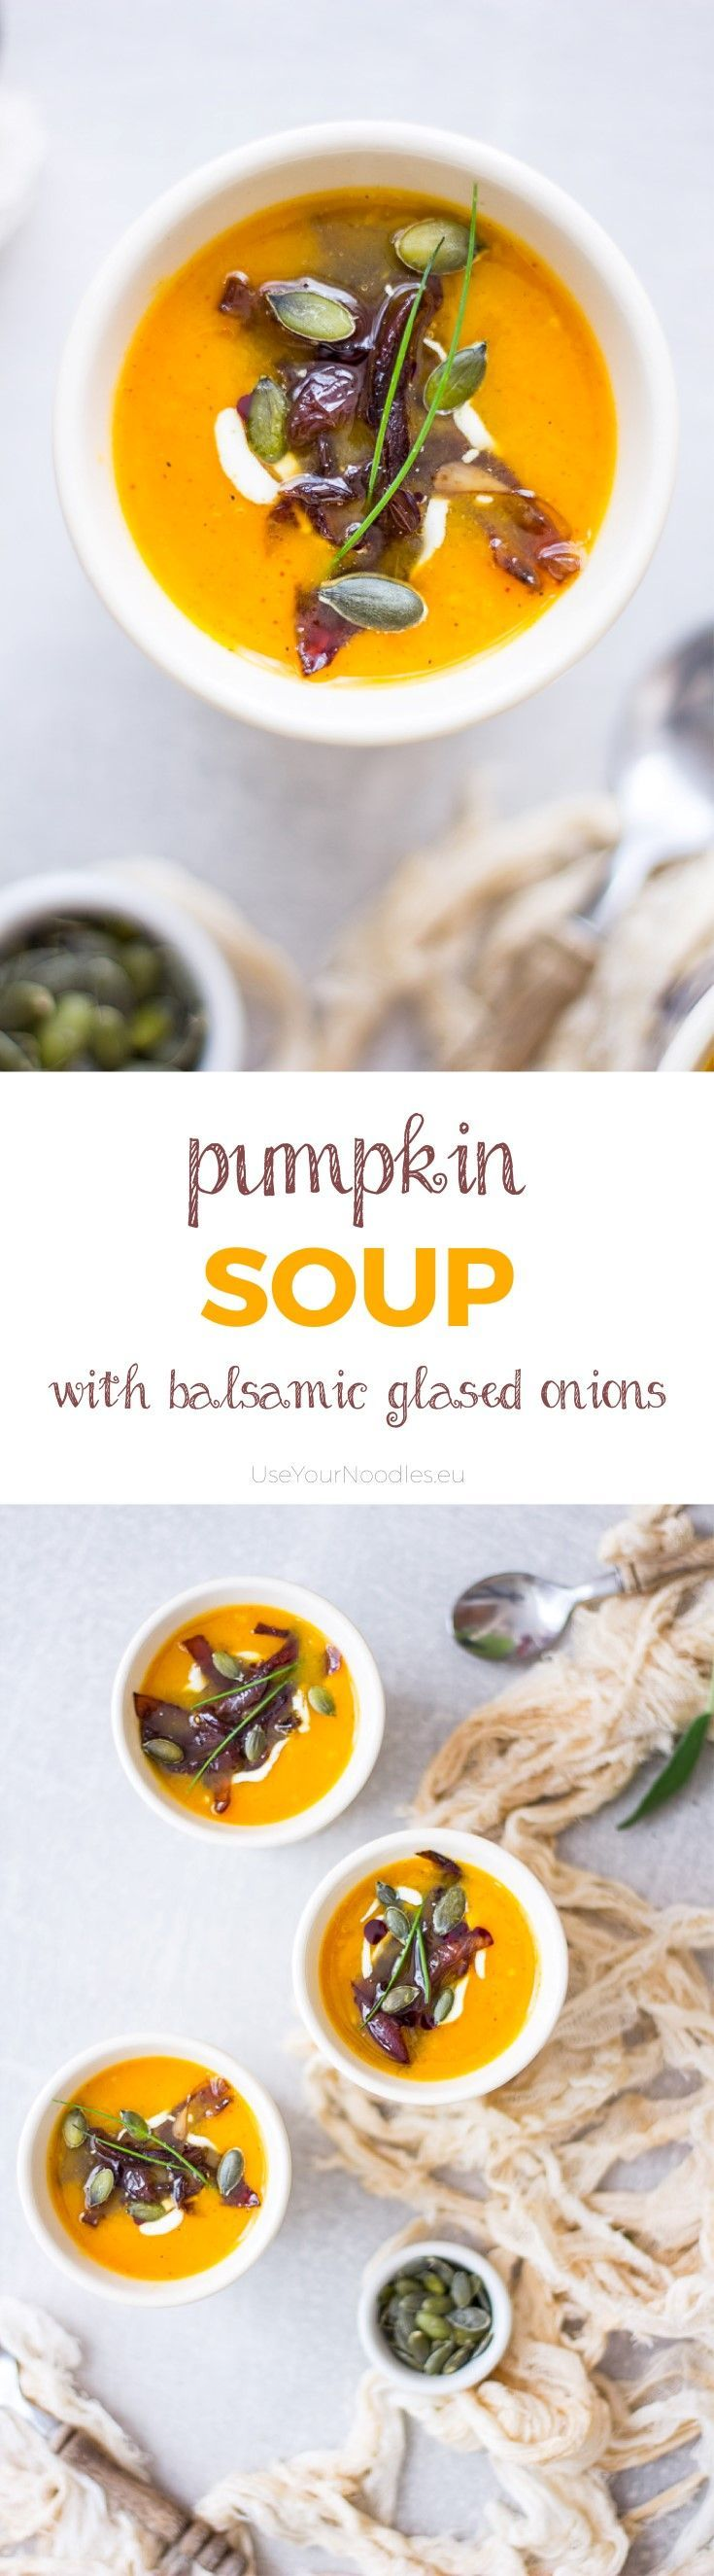 Warm, sweet and spicy pumpkin soup with balsamic glased onions will be your new favorite autumn comfort food! Click to find the whole recipe or pin and save for later!